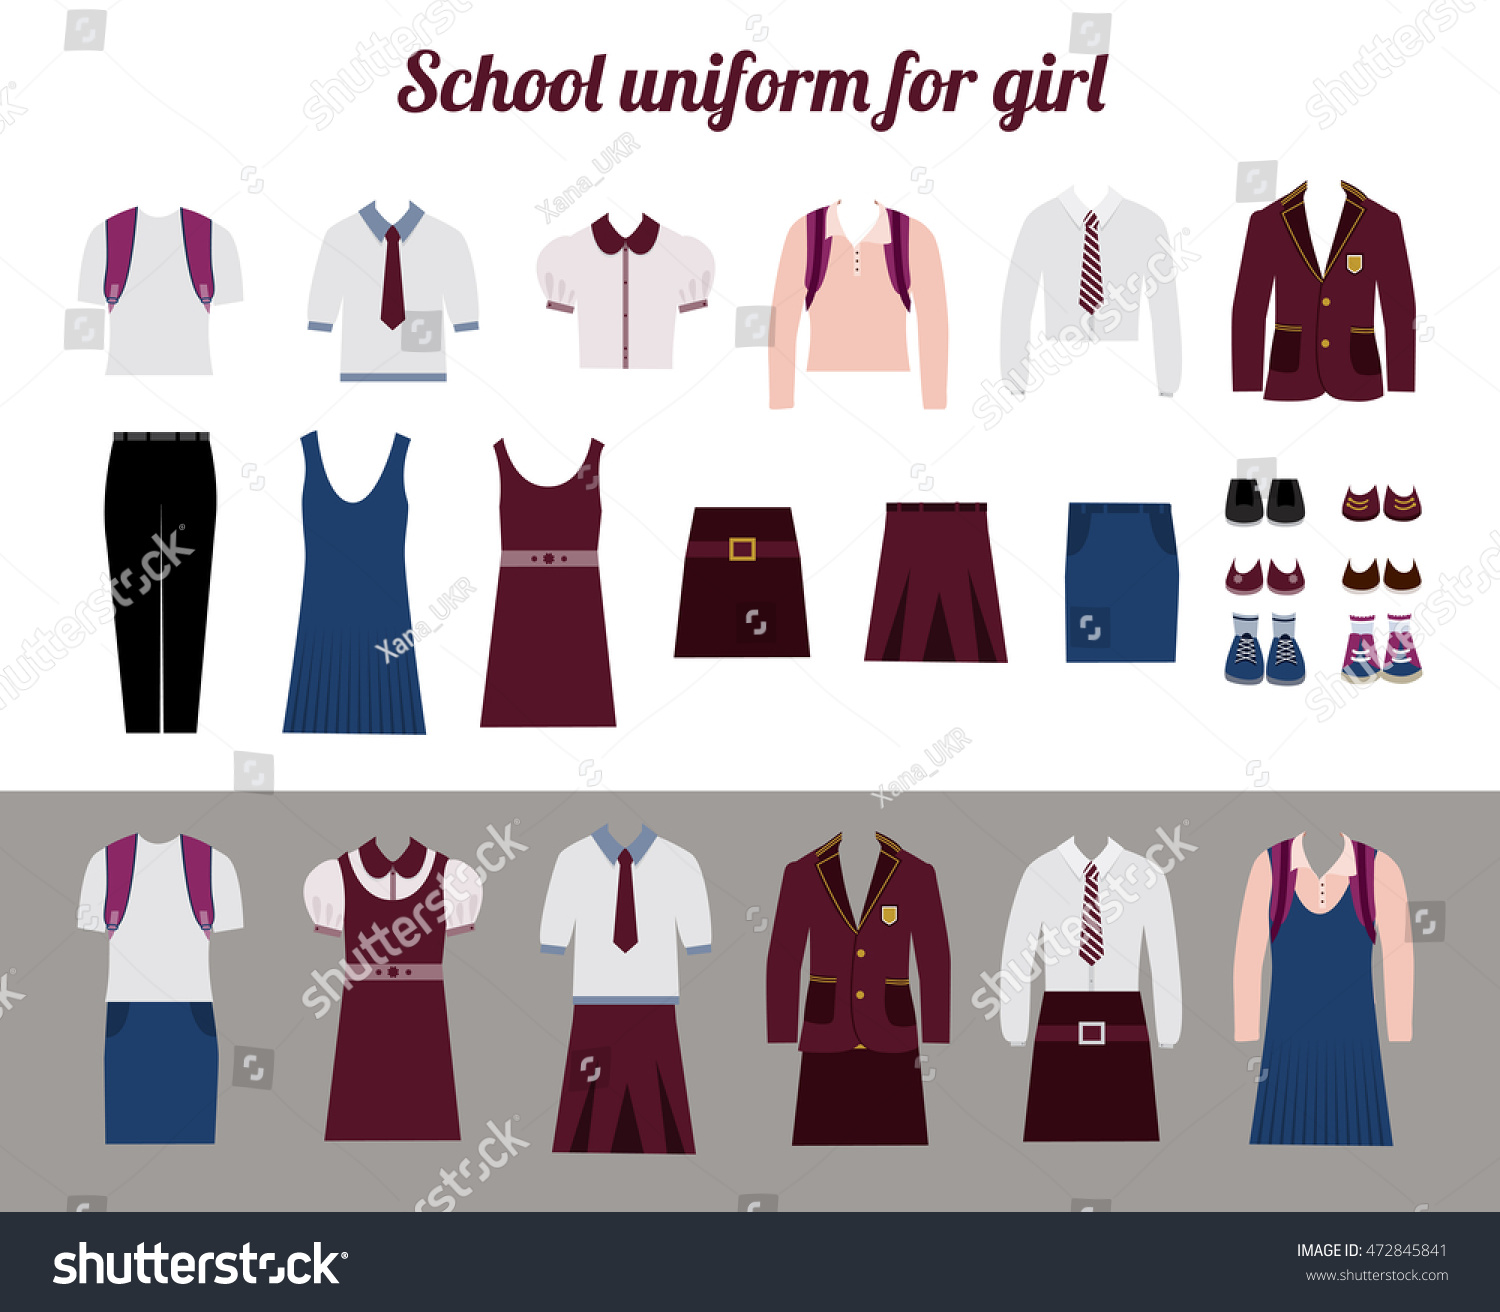 School uniform for girls kit flat vector illustration Set of female school dress code clothes Collared button shirl skirt blazer and shoes